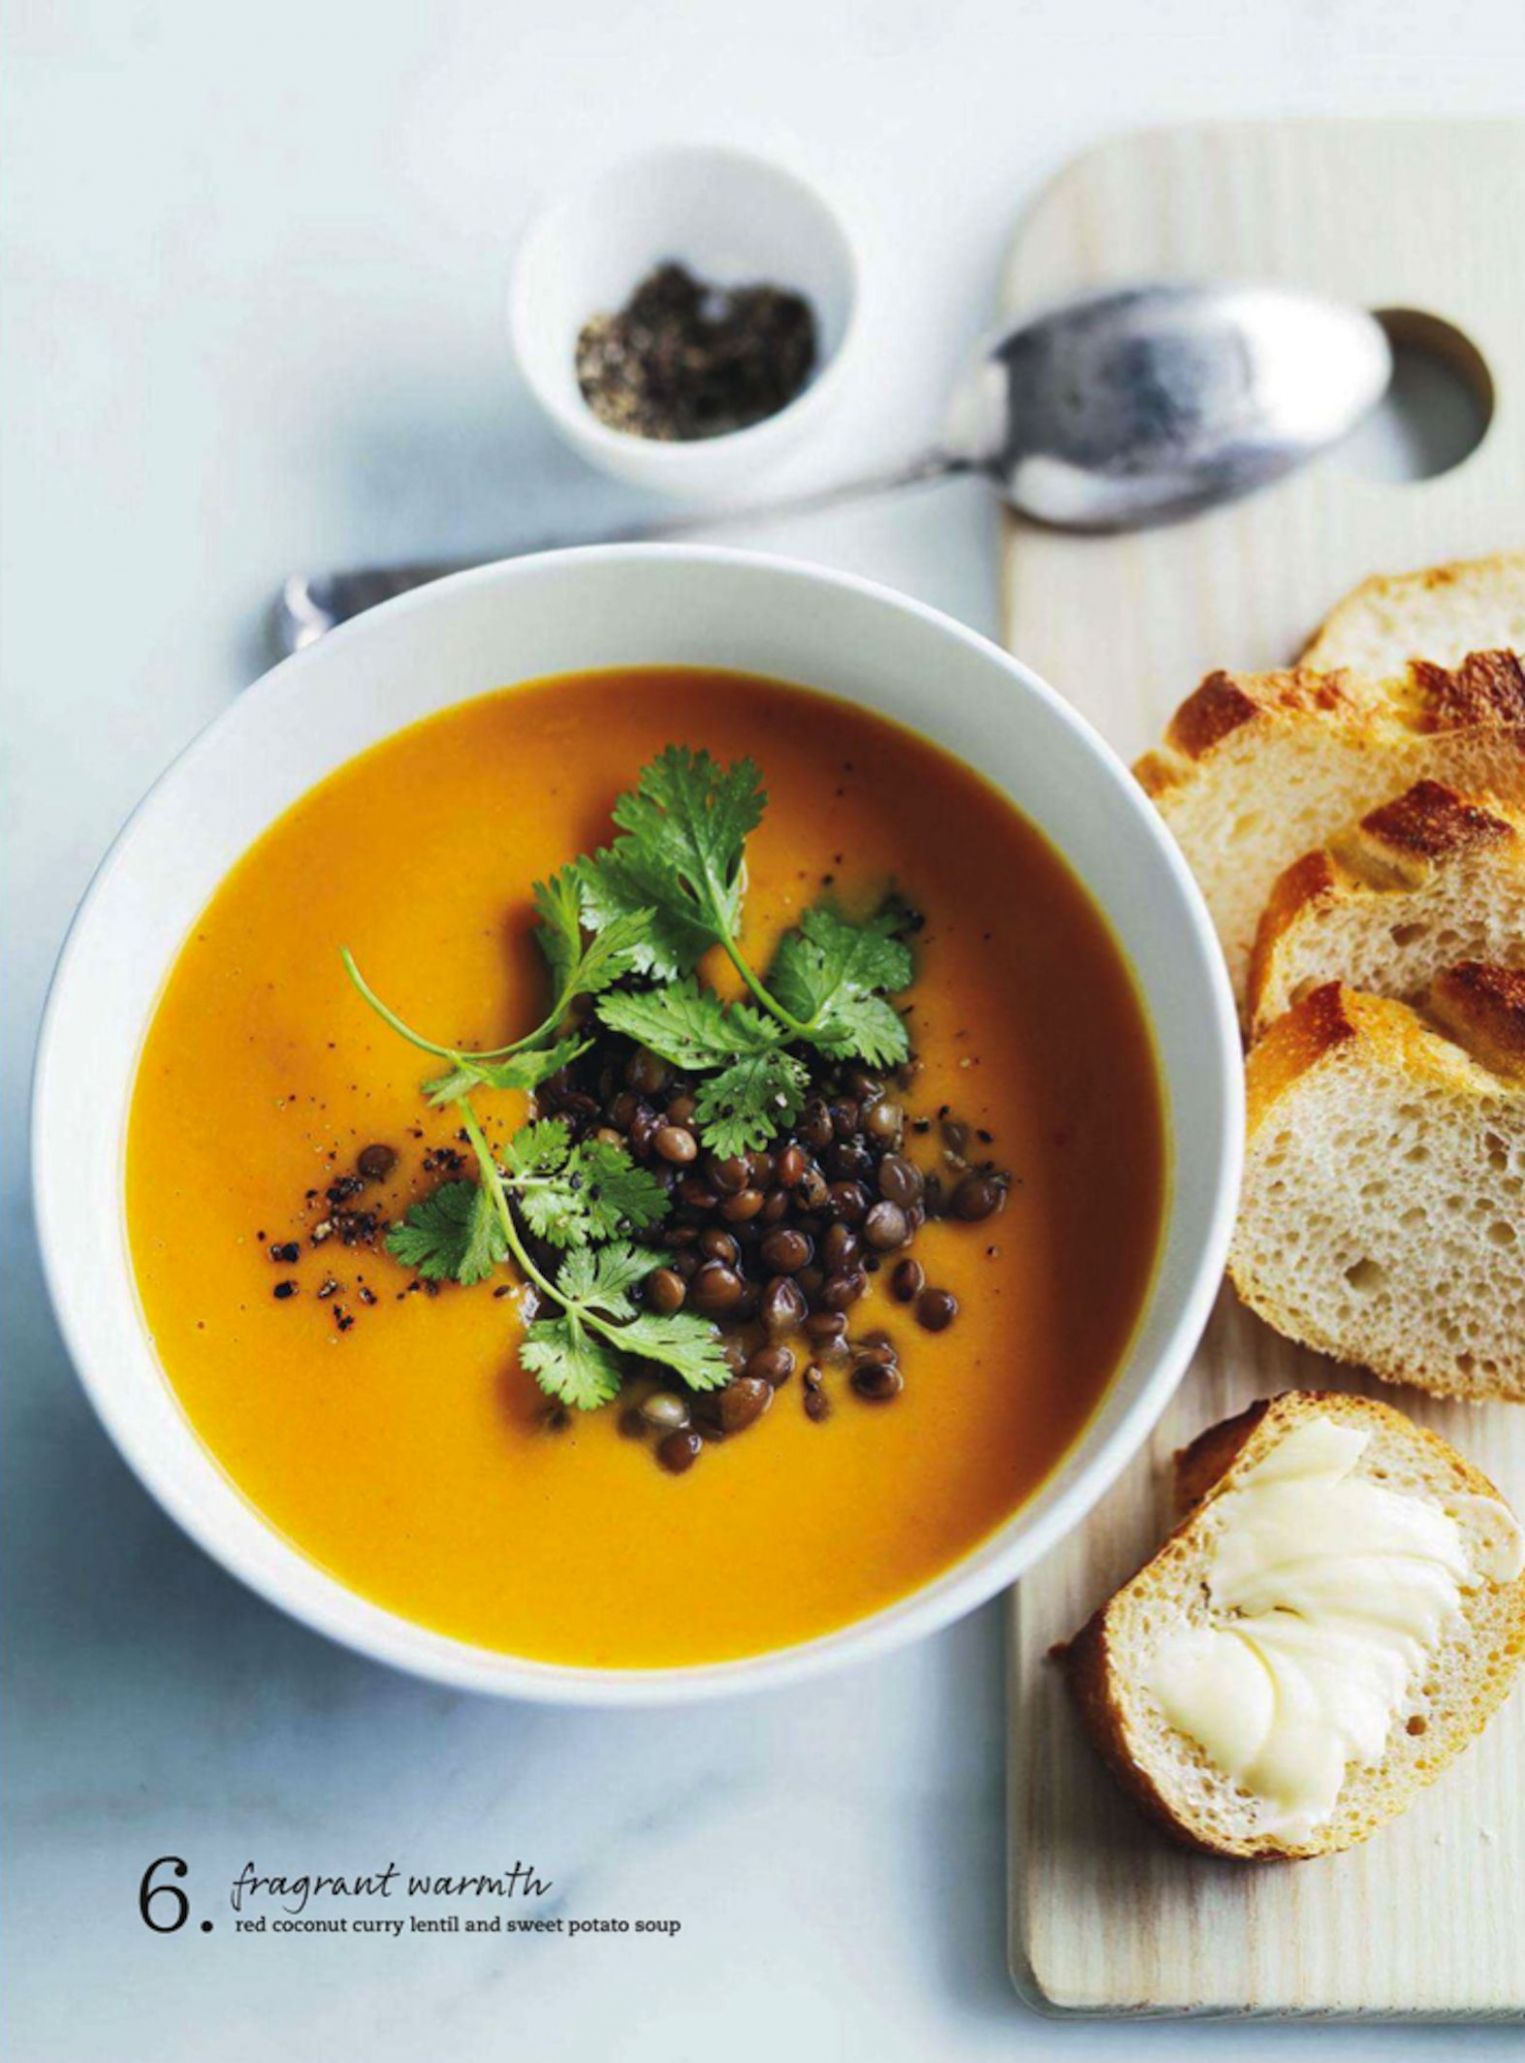 Red Coconut Curry Lentil & Sweet Potato Soup